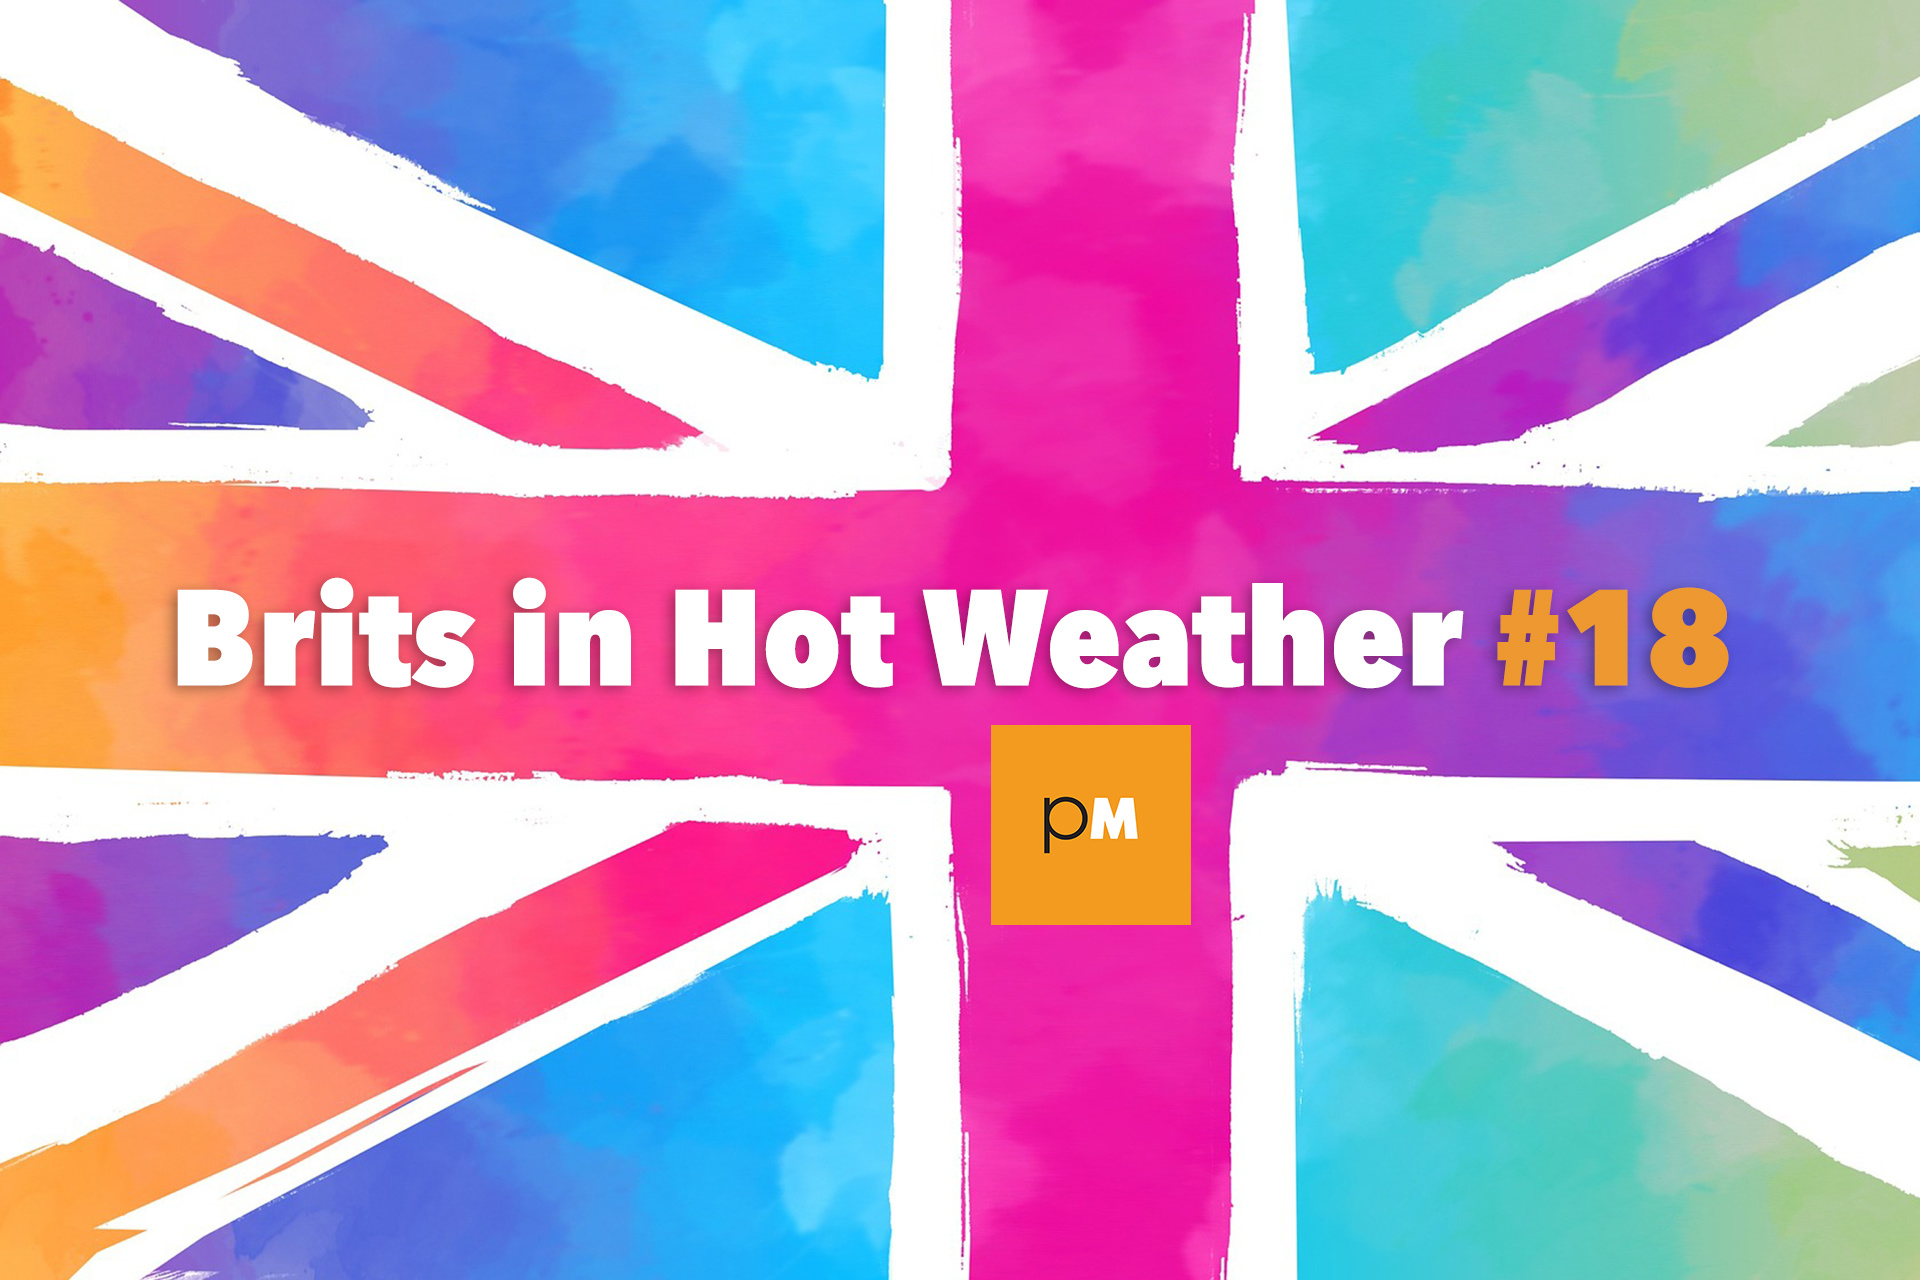 Brits in Hot Weather #18: Novacub, Johnny Kills, See Thru Hands, Brooke Bentham, Søren Lorensen